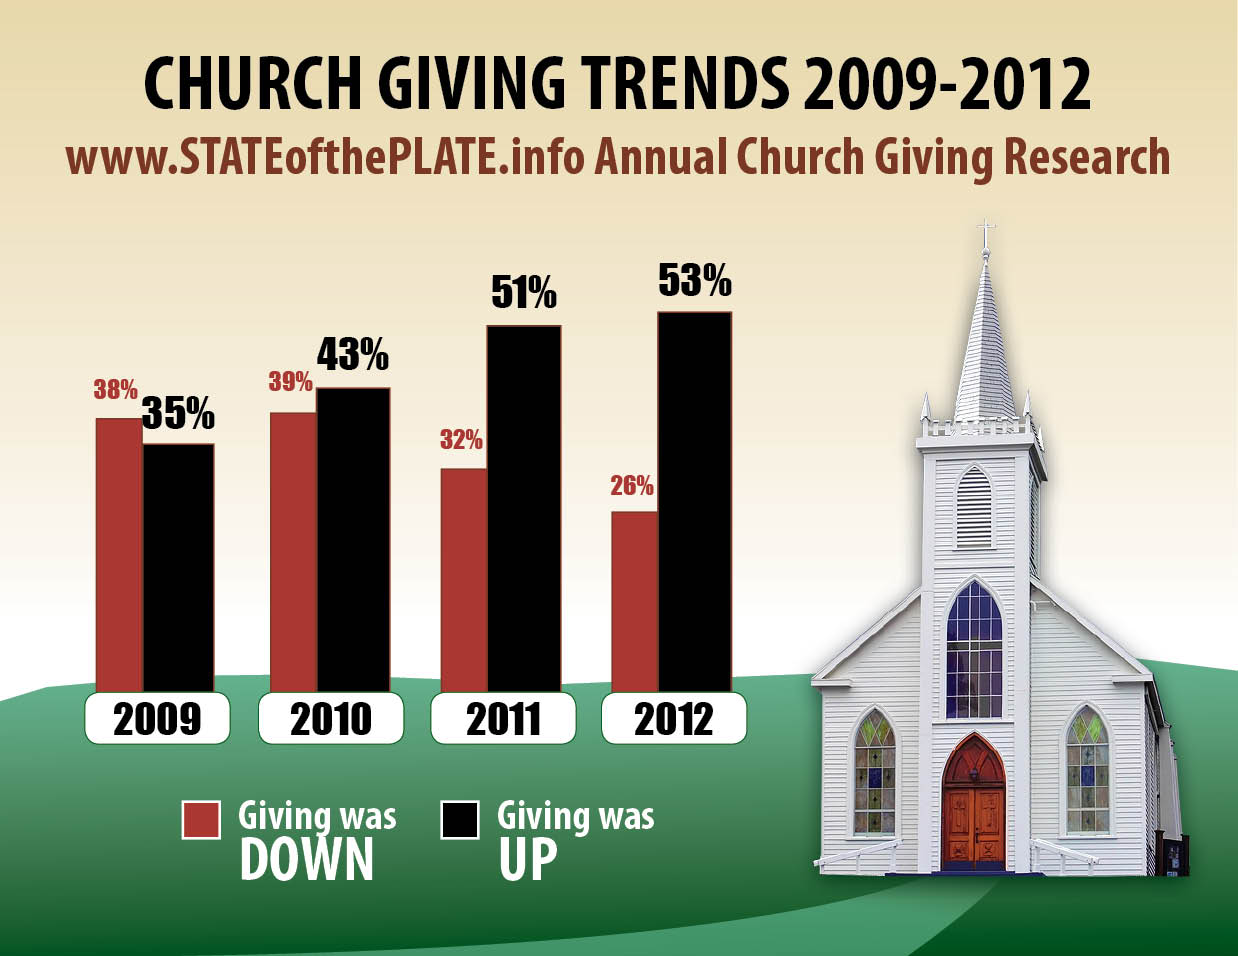 church-giving-statistics-trends-tithing-2009-2012-infographic